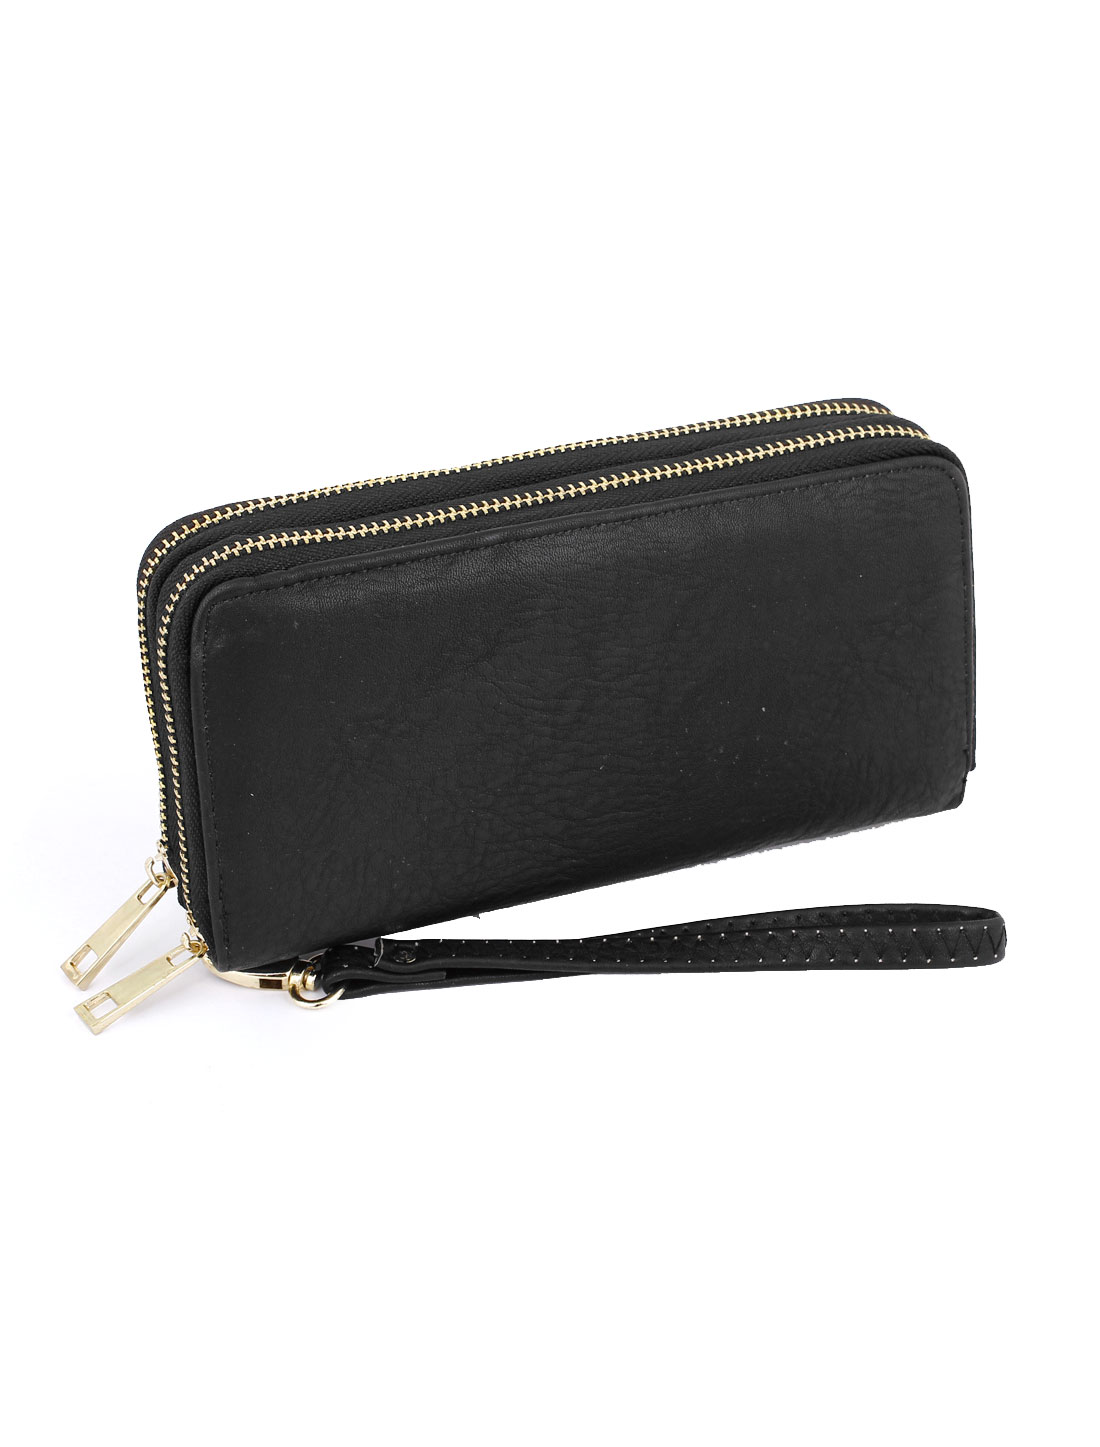 Lady Gold Tone Zippers Black Faux Leather Money Holder Wallet Purse